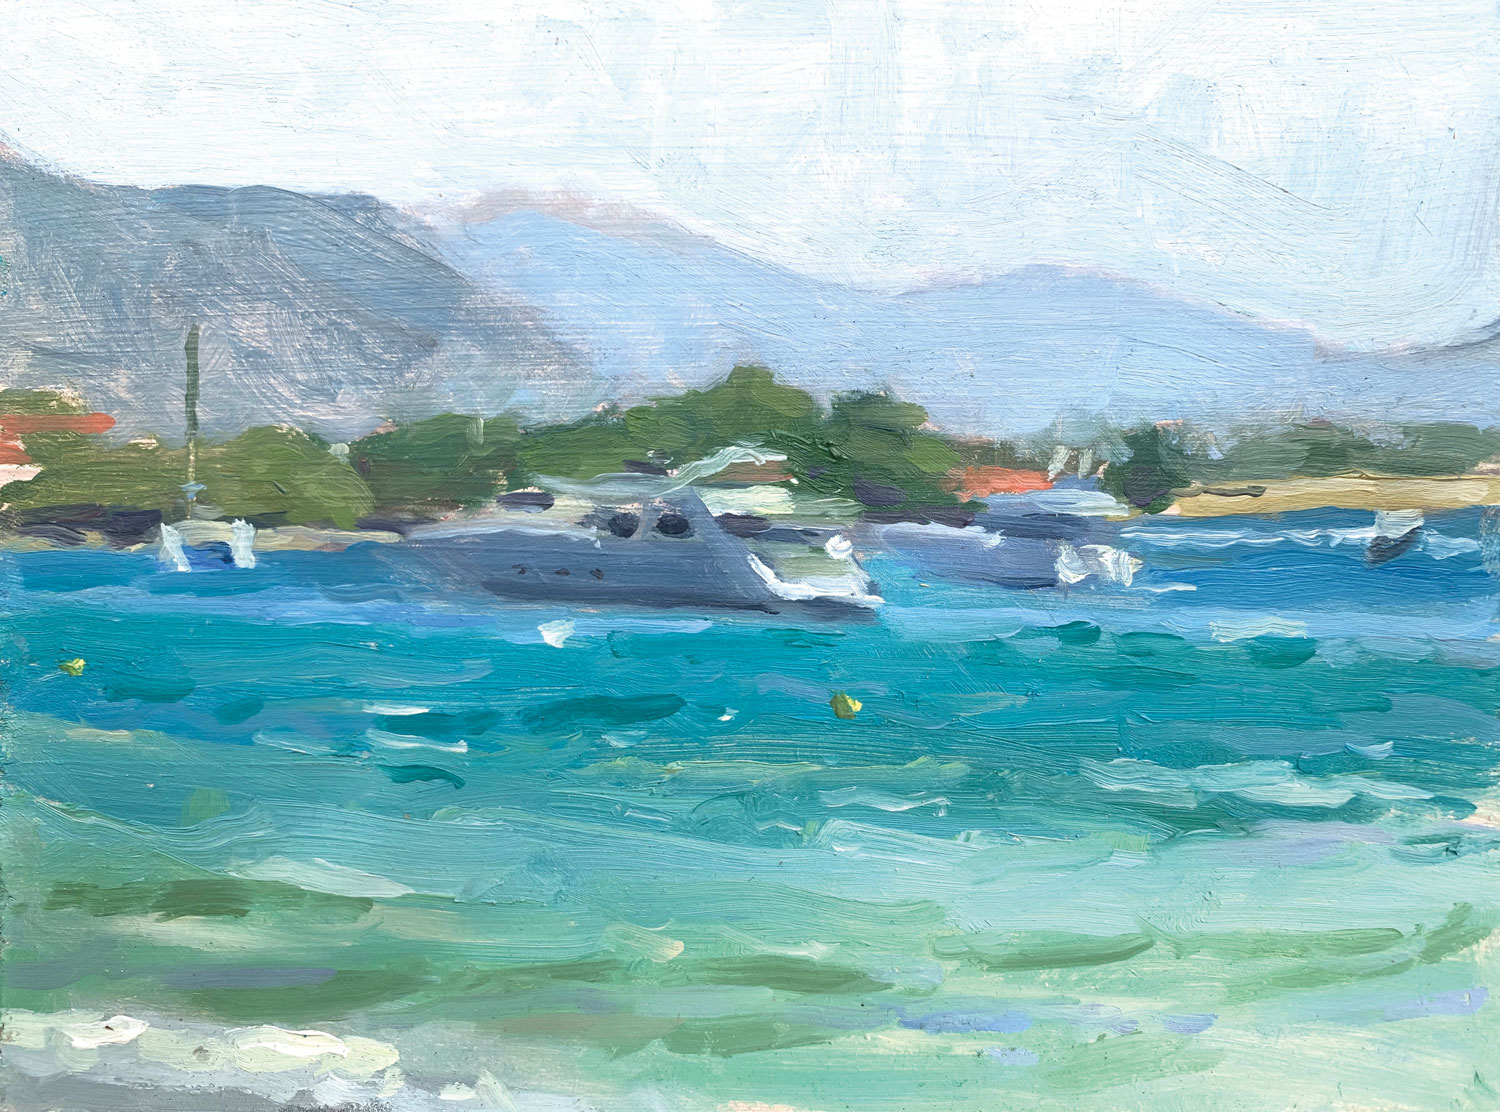 """YACHTS BEYOND THE HARBOUR   2019   oil on panel   8x6""""  £200 (unframed)"""